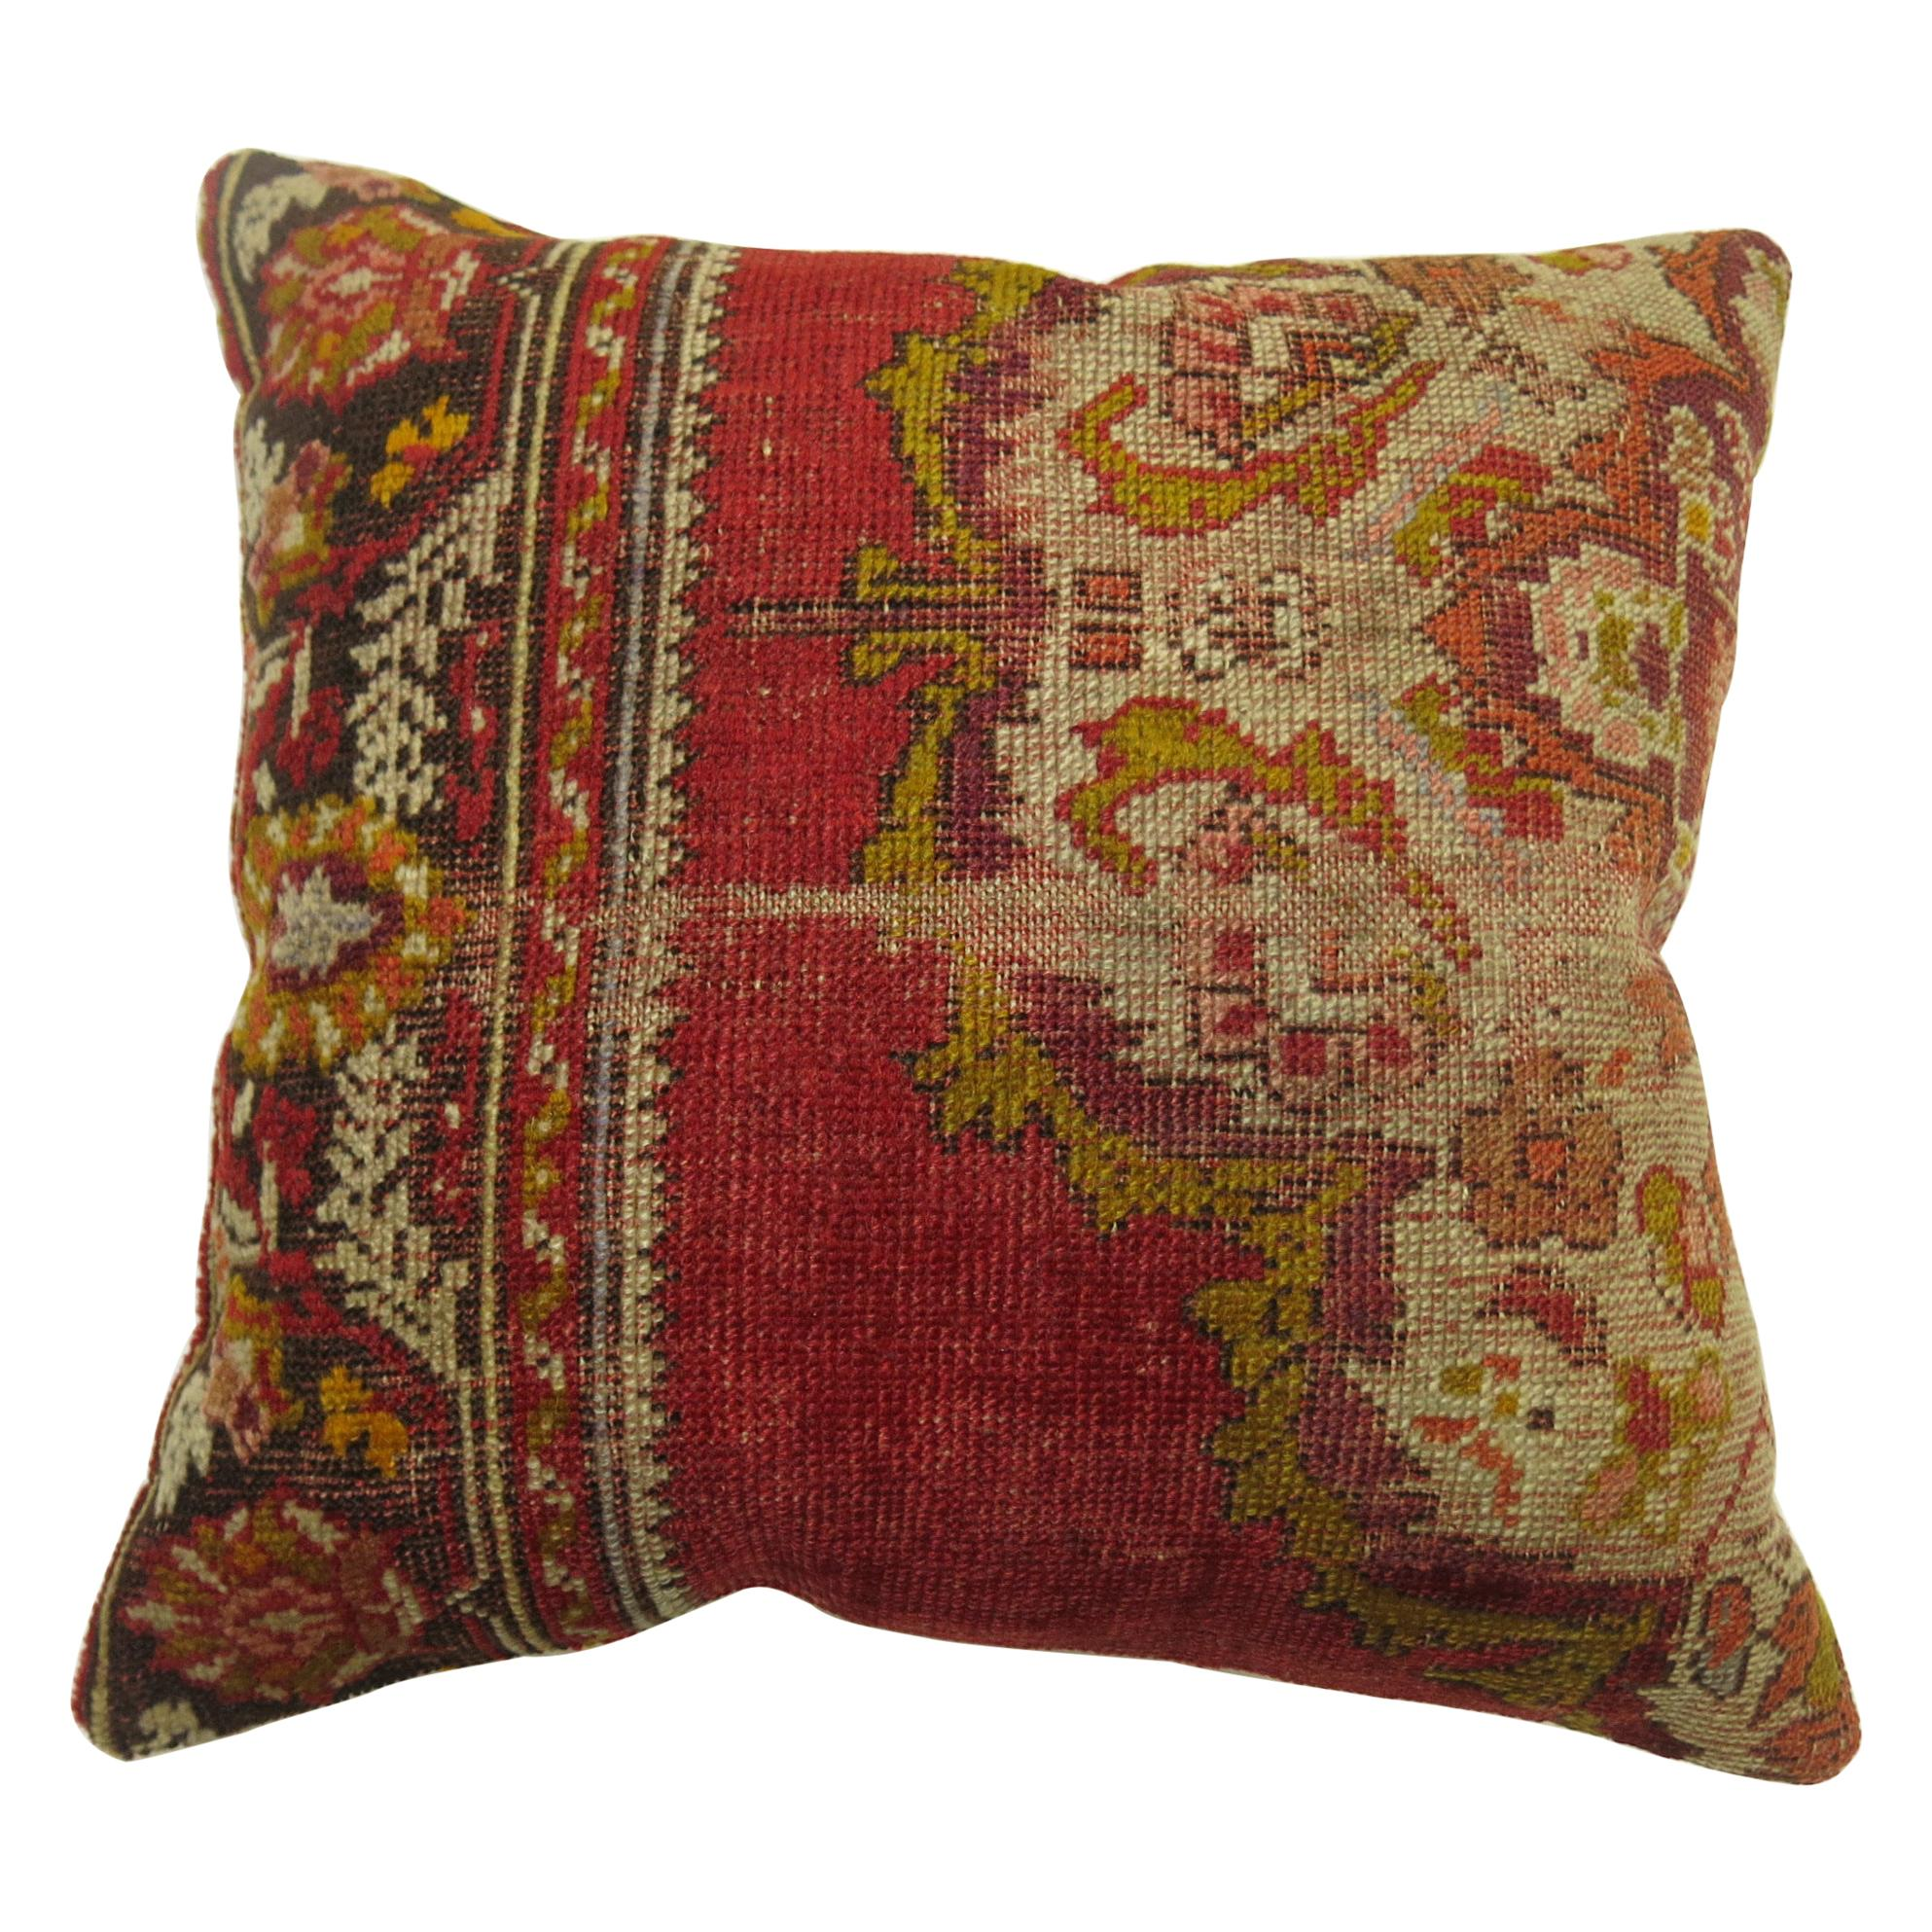 Worn Red Traditional Turkish Rug Pillow